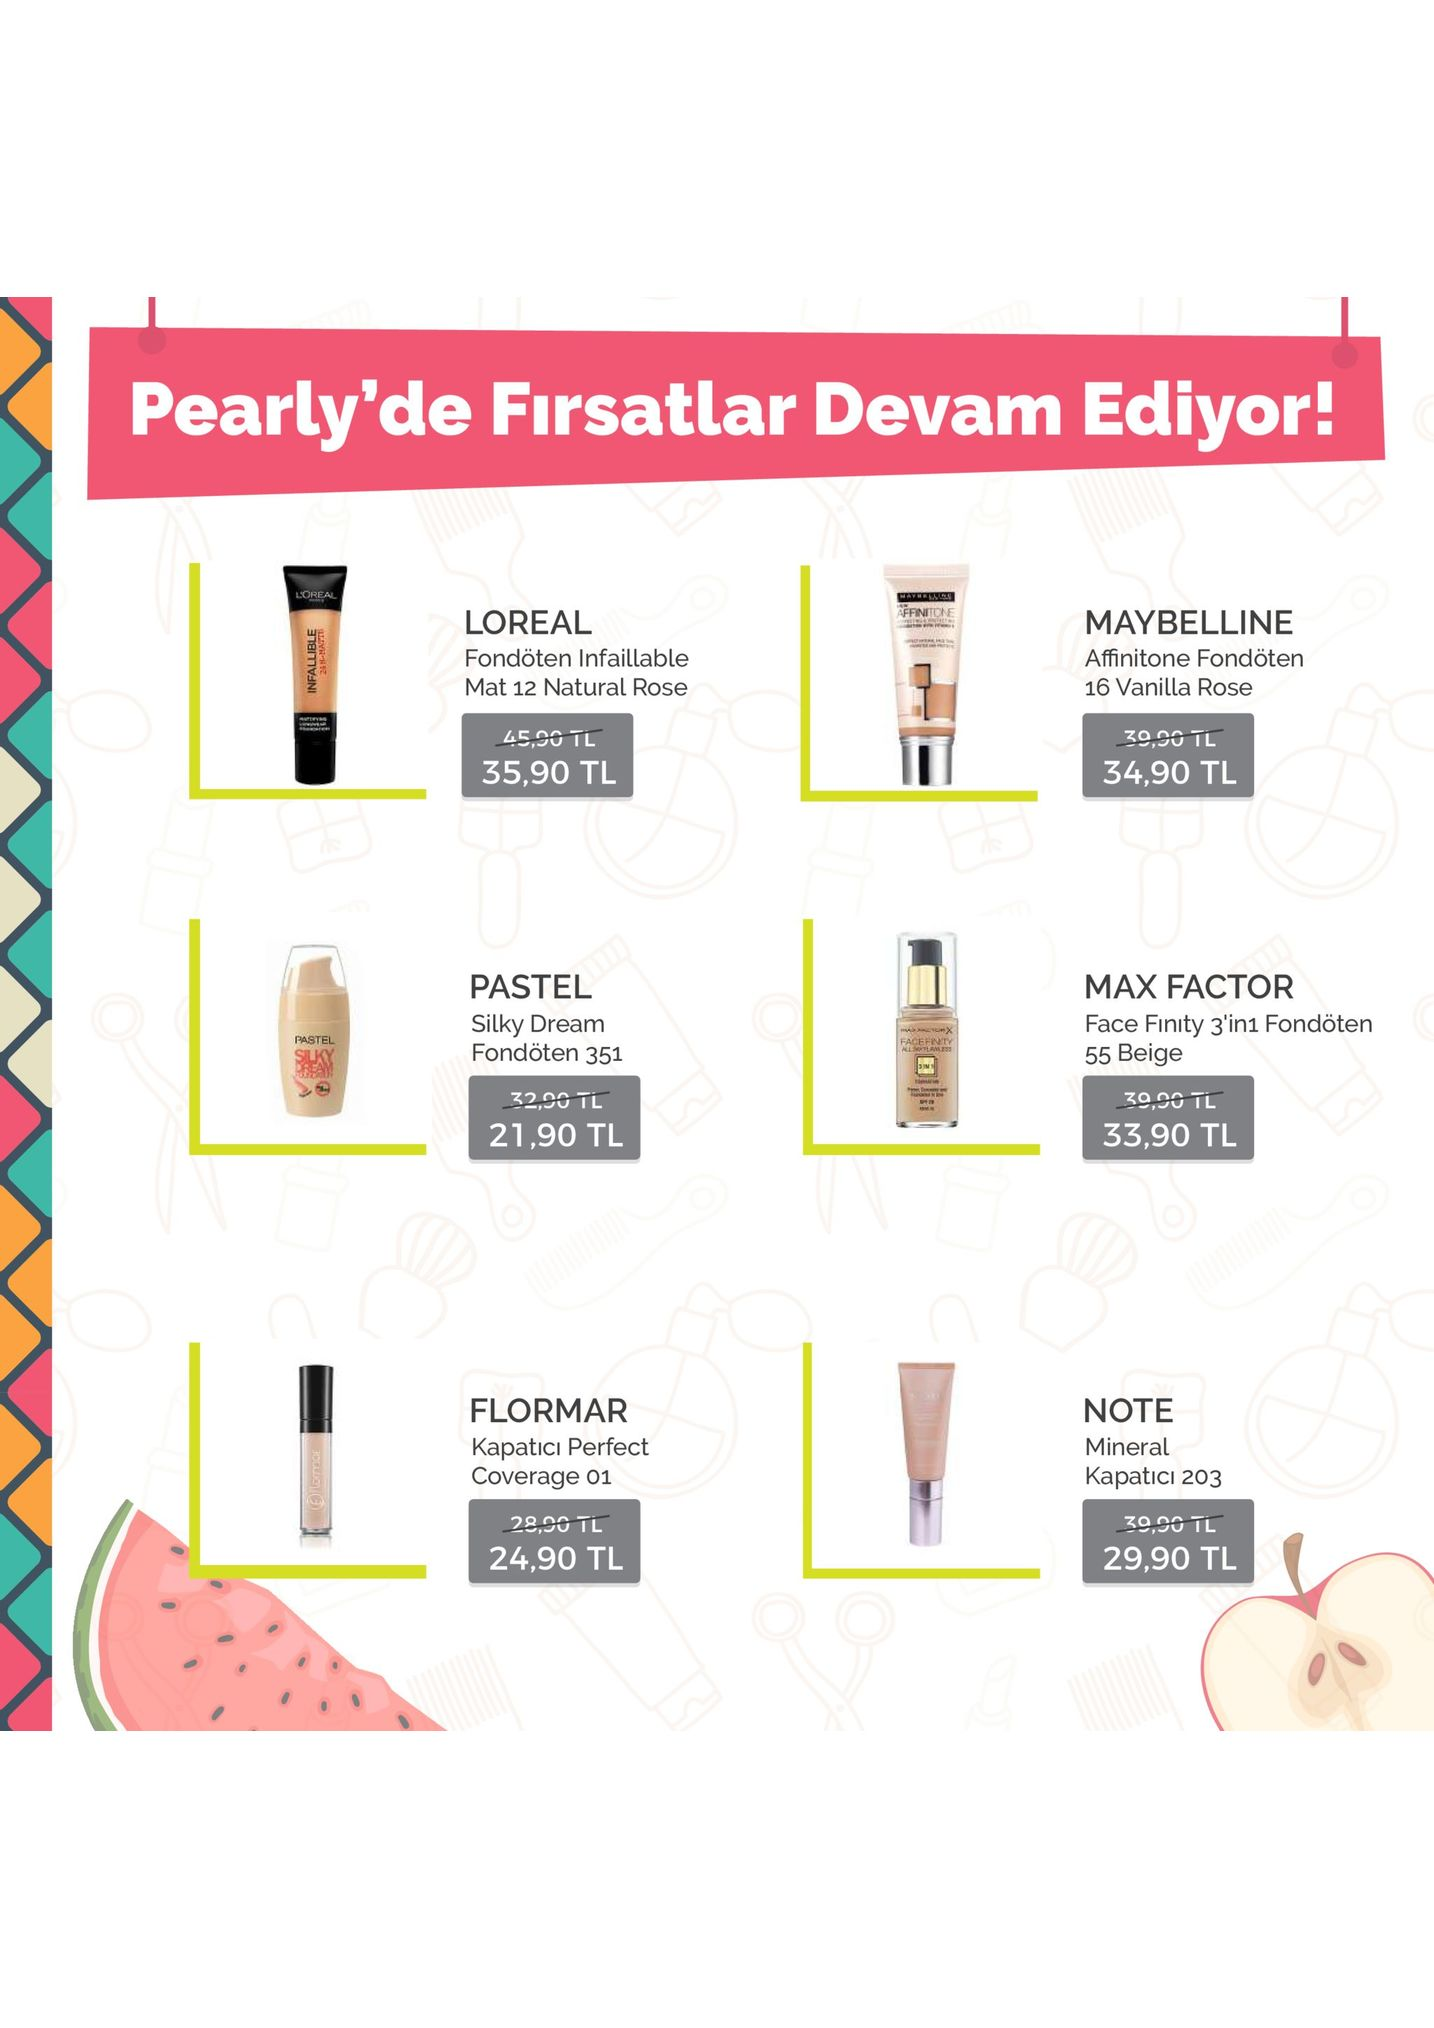 pearly'de firsatlar devam ediyor! loreal affinitone loreal fondöten infaillable mat 12 natural rose maybelline 45,90 tl 35,90 tl 34,90 tl max factor face finity 3'in1 fondöten 55 beige pastel silky dream pastel facefnety fondöten 351 22,00 tl 21,90 tl 29,90 tl 33,90 tl note mineral kapaticı 203 flormar kapatici perfect coverage 01 っ o 24,90 tl 29,90 tl